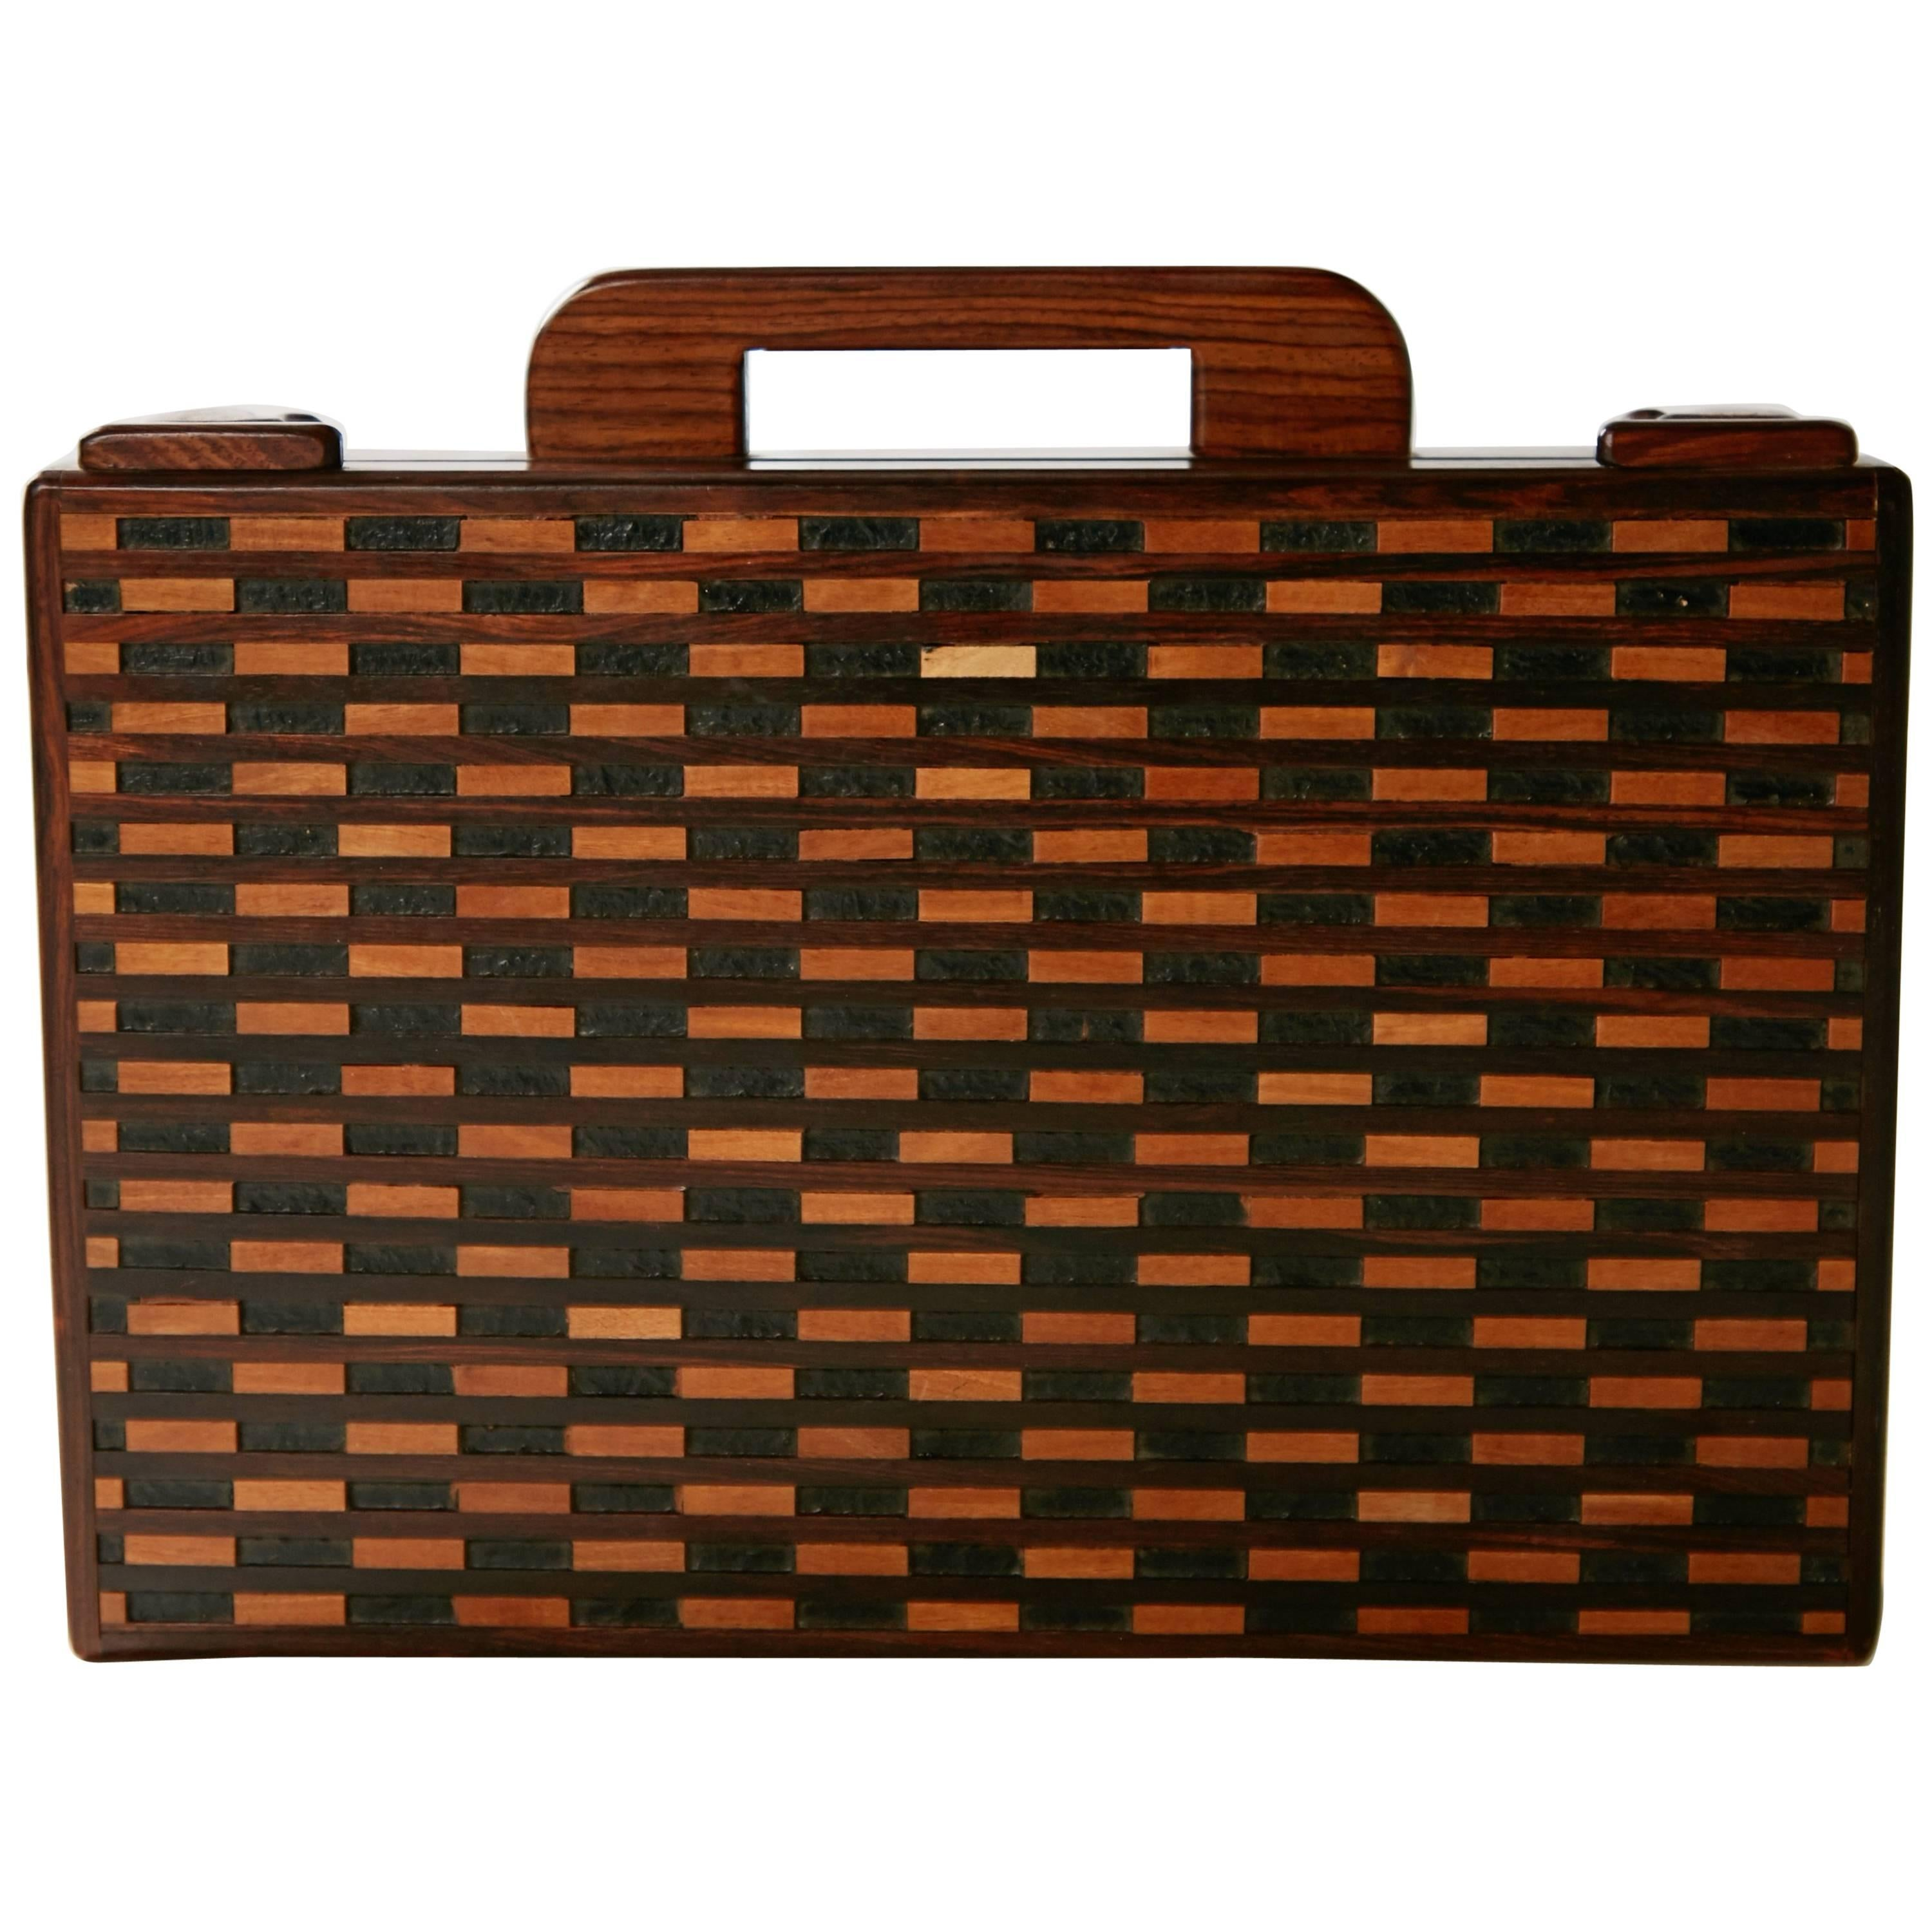 Don Shoemaker Exotic Wood Inlaid Decorative Briefcase for Señal, circa 1970